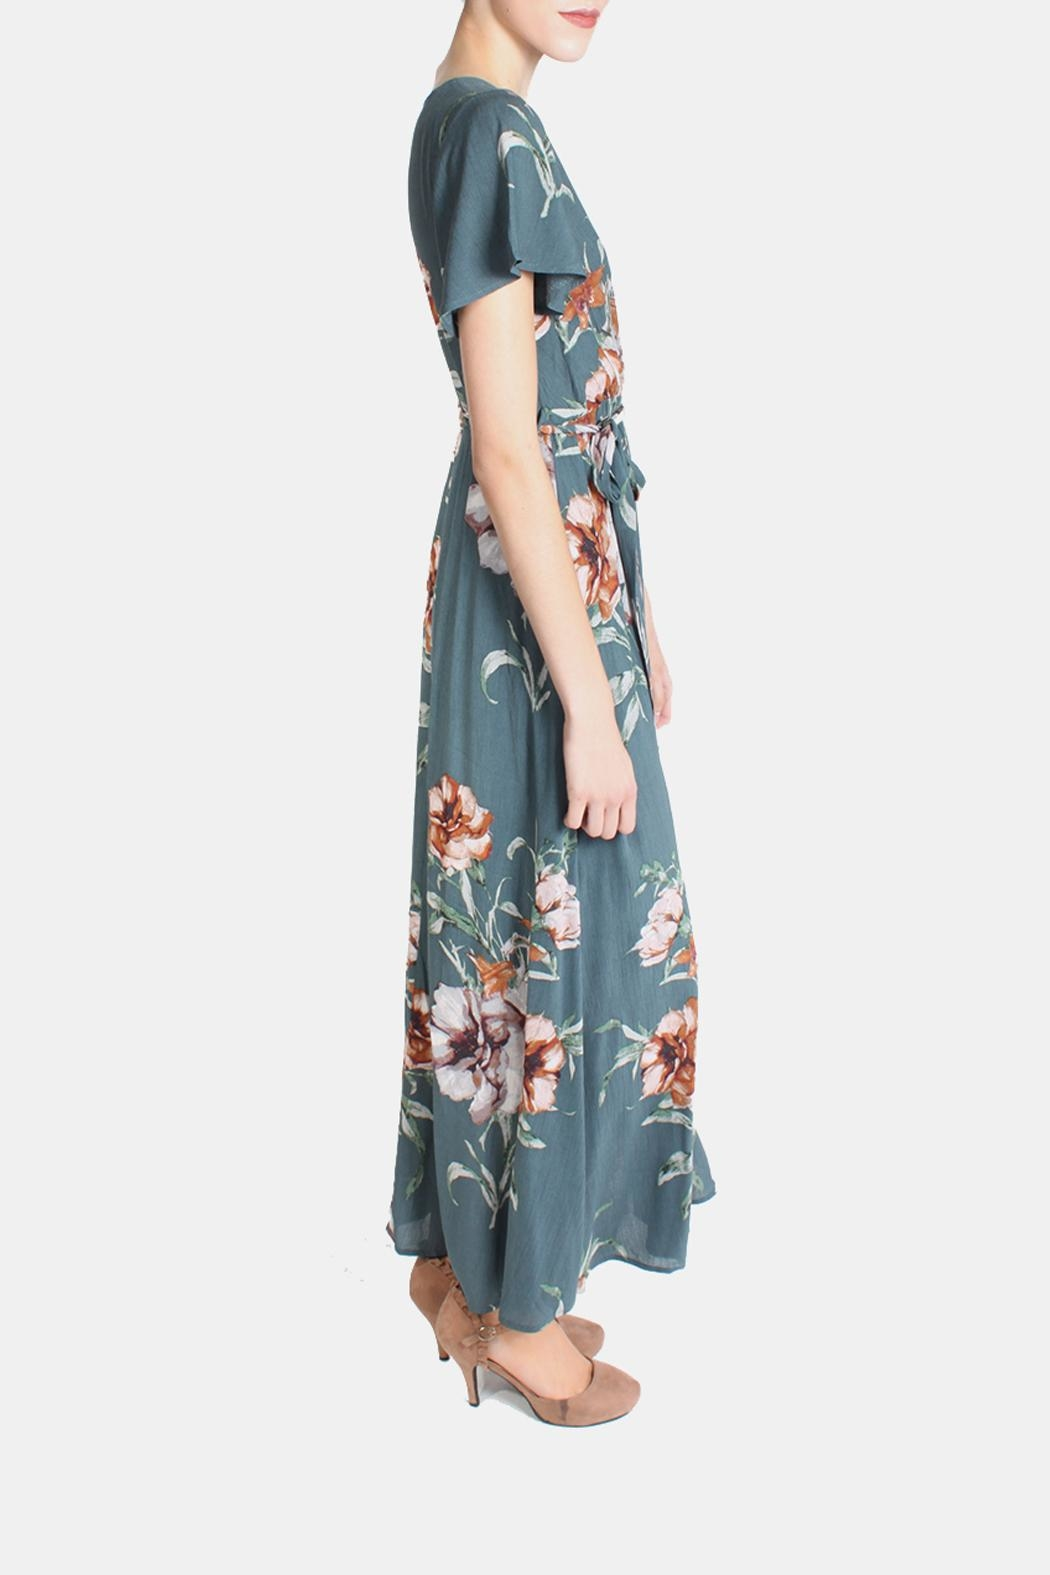 Illa Illa Sunrise Floral Wrap Dress - Front Full Image